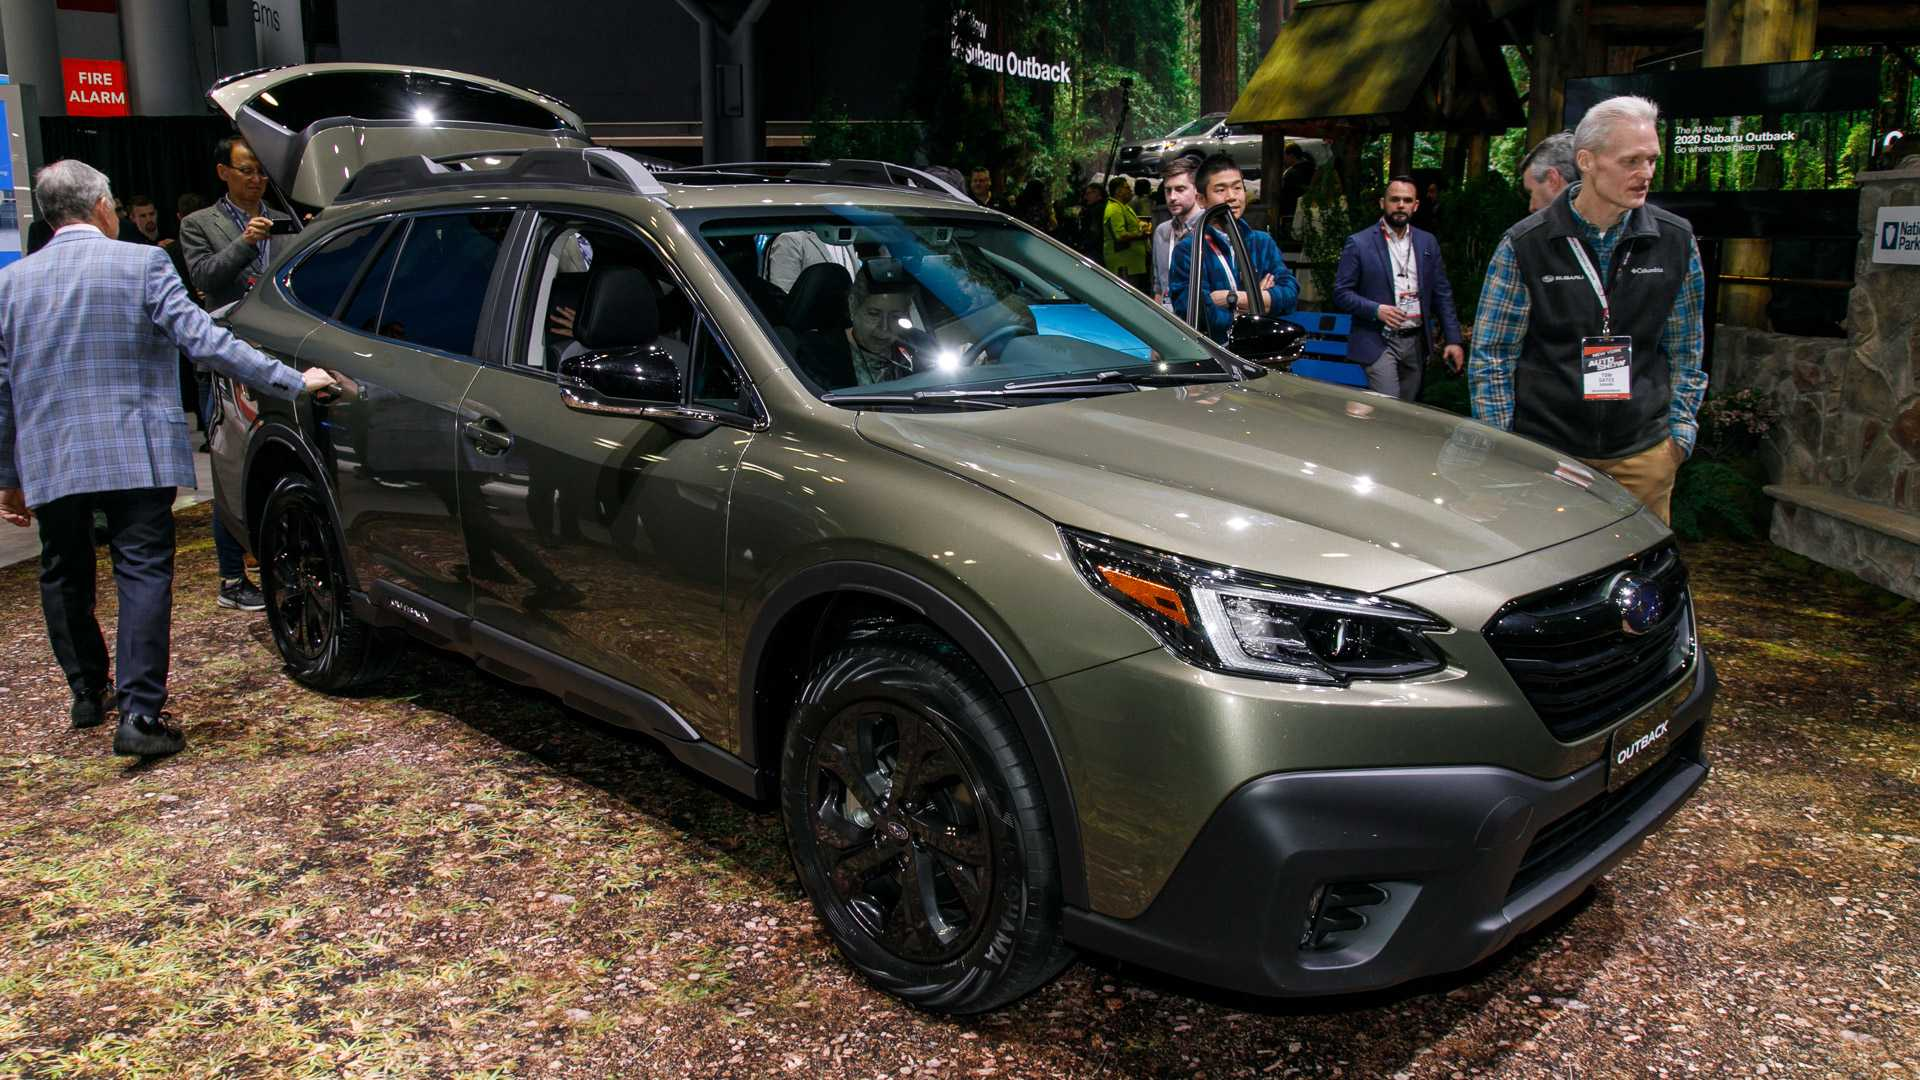 95 New Subaru Outback 2020 Uk Price Design And Review